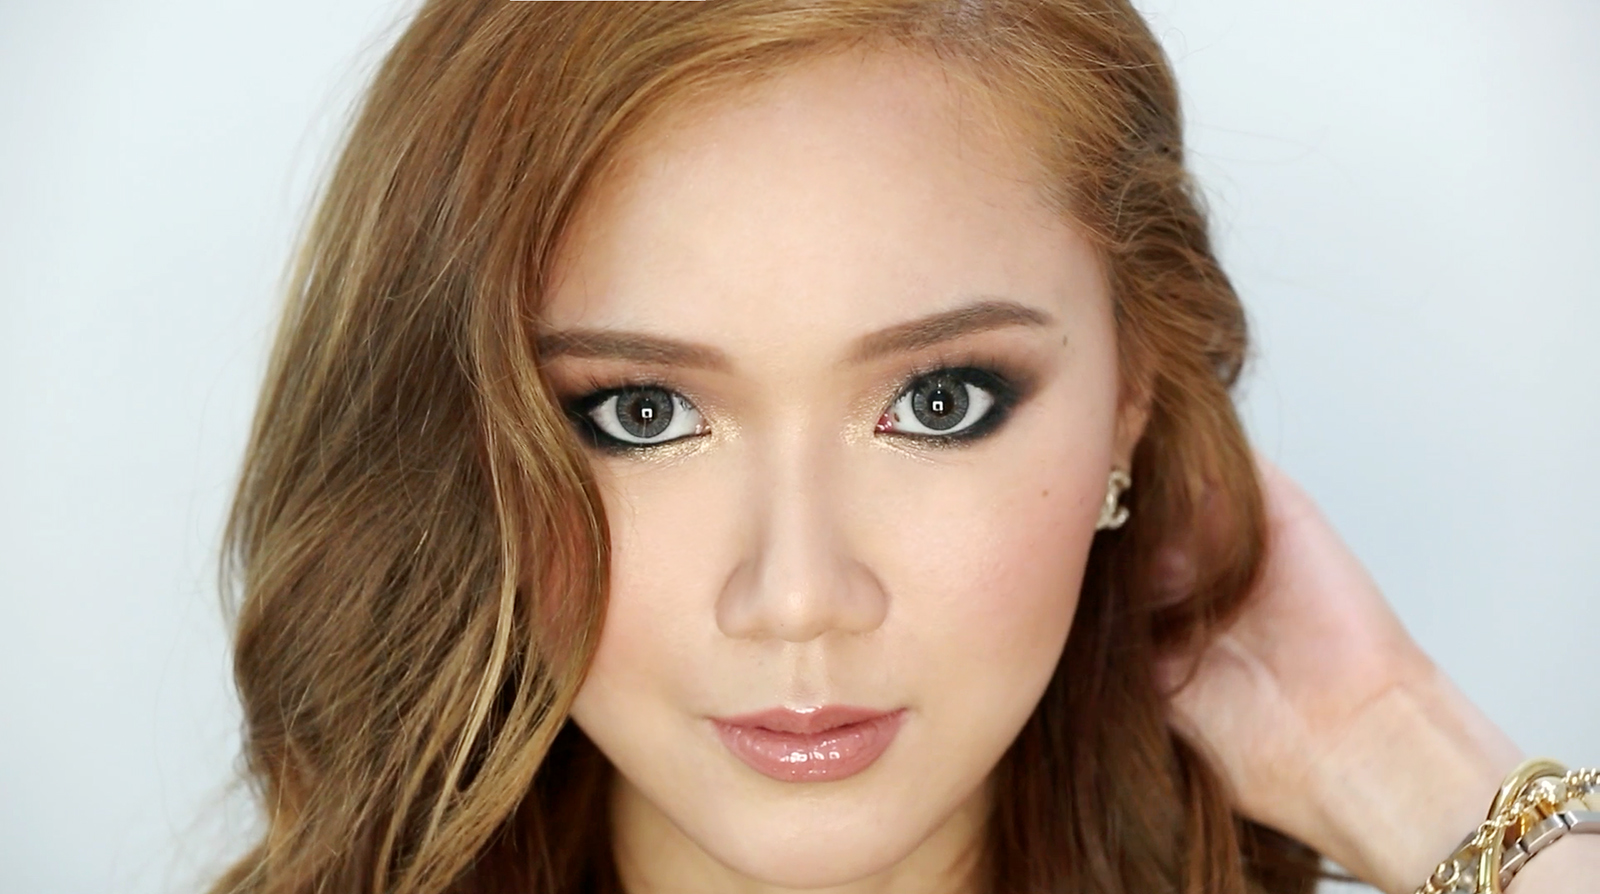 Day To Night Smokey Eye Makeup Tutorial - www.itscamilleco.com